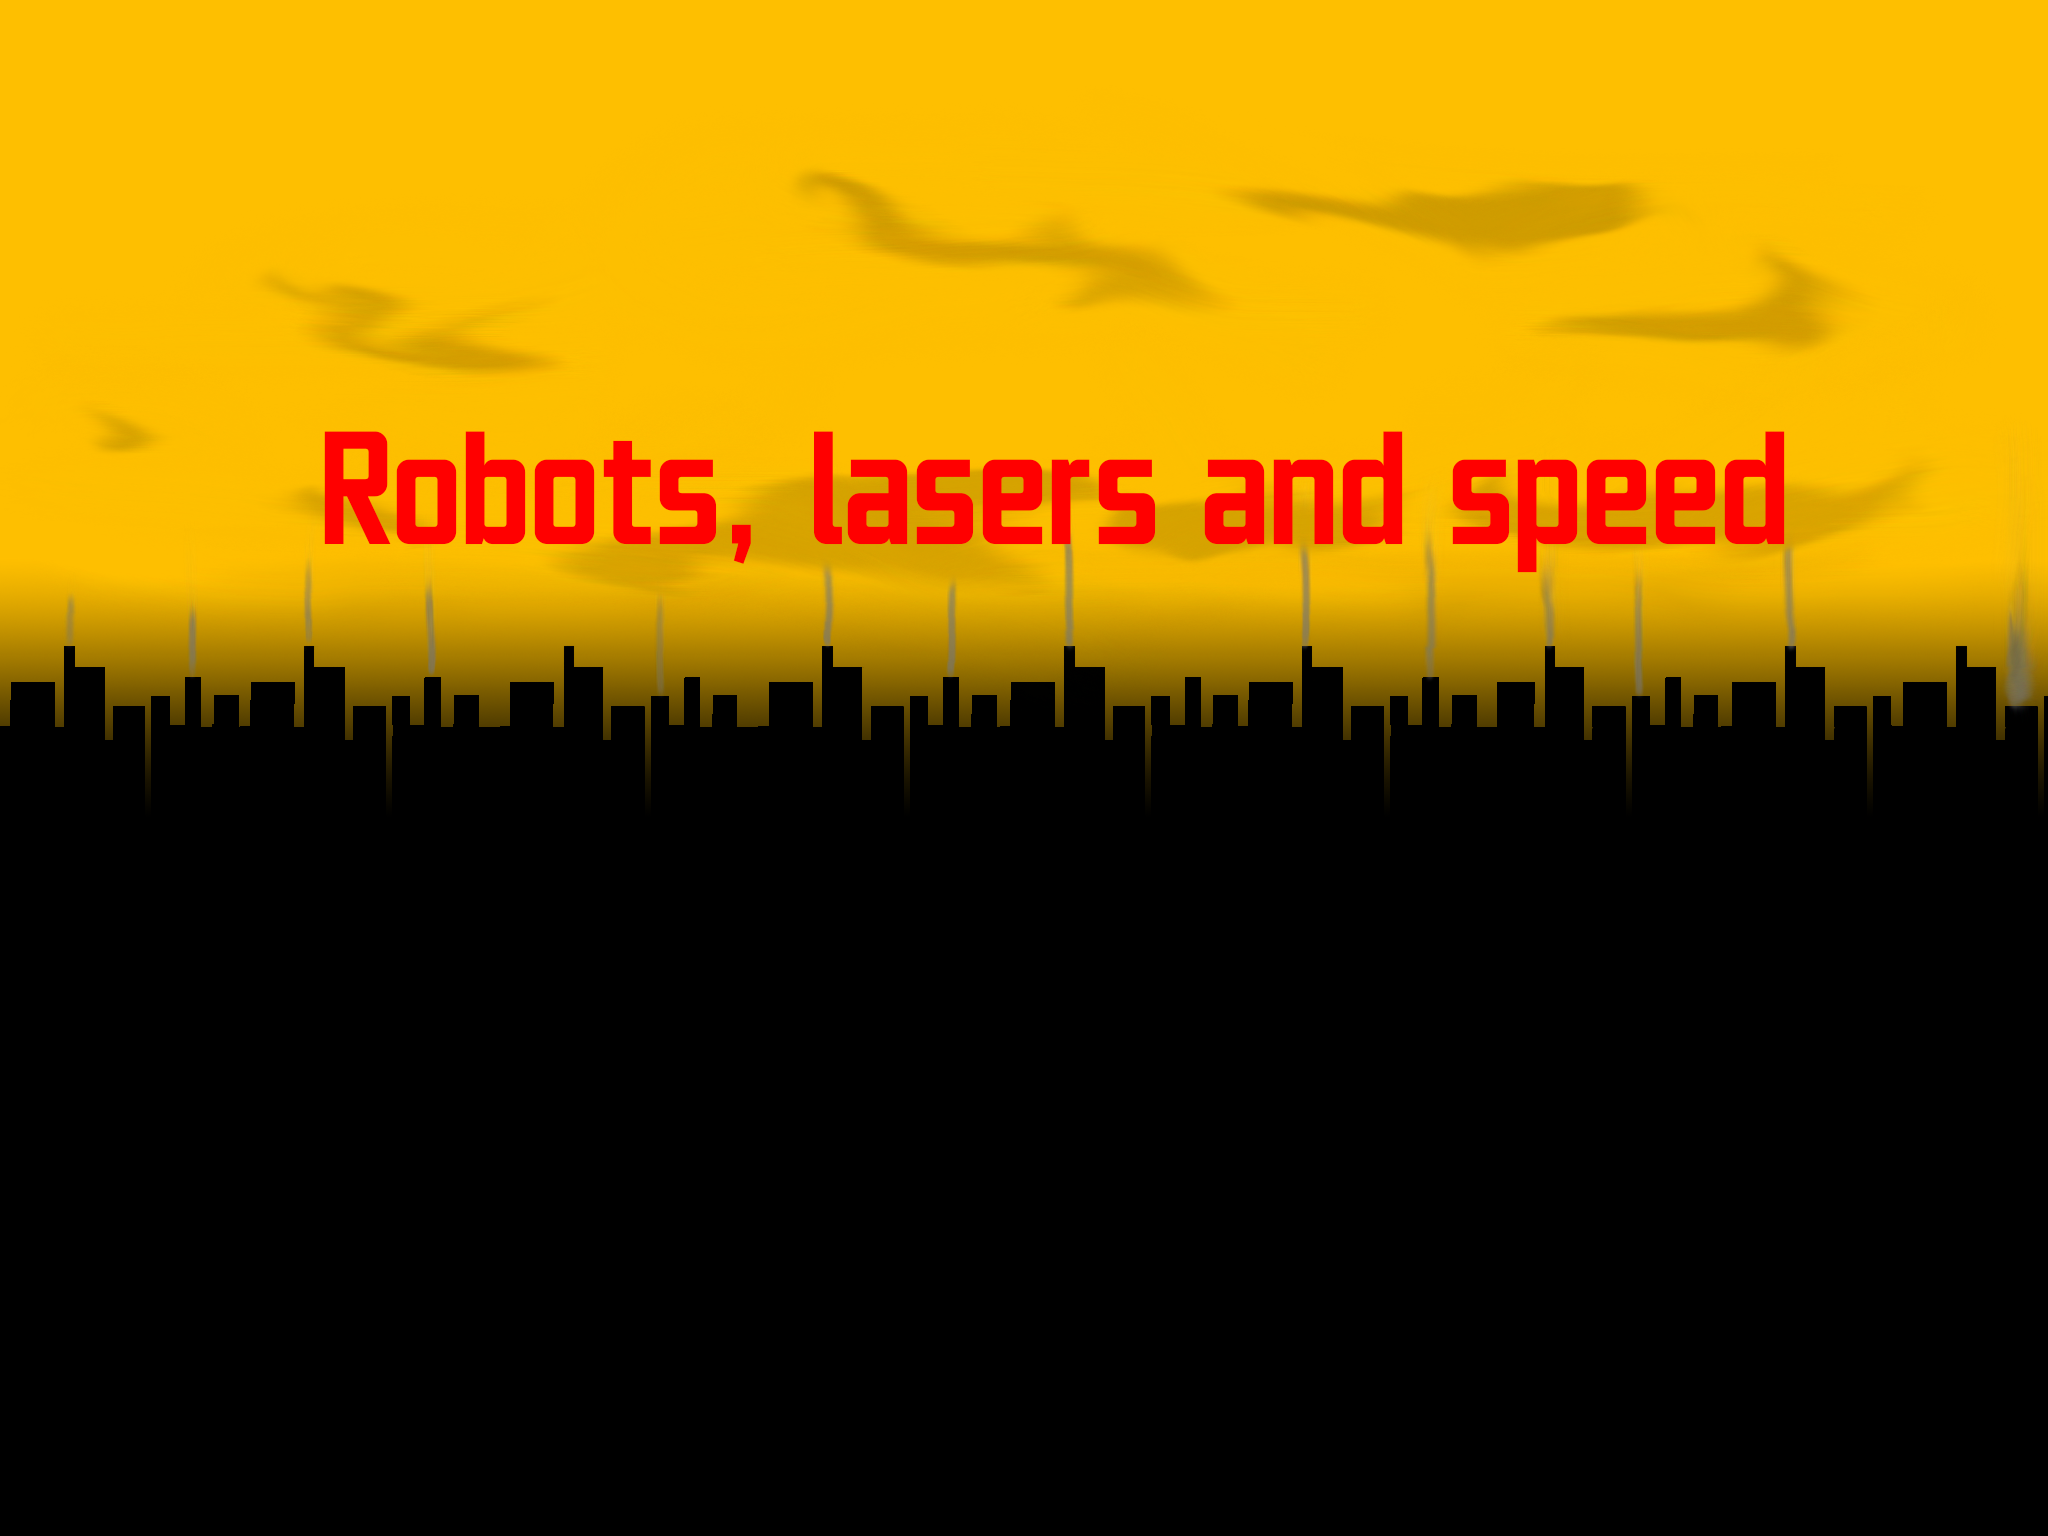 Robots, lasers and speed